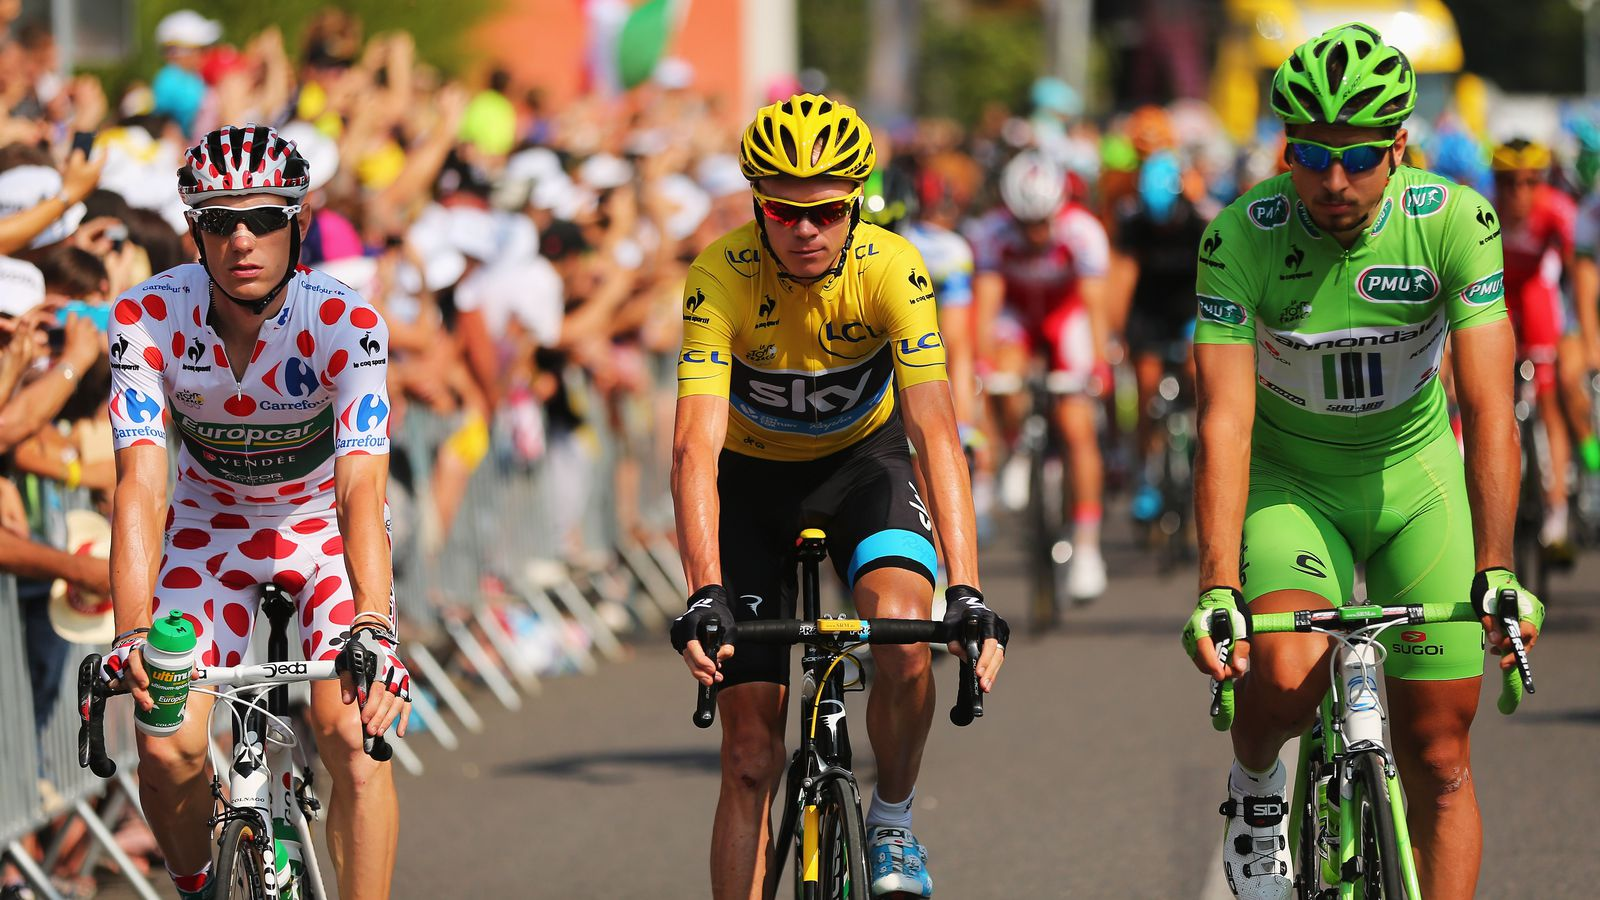 Tour de France 2013 results, Stage 15: Chris Froome wins